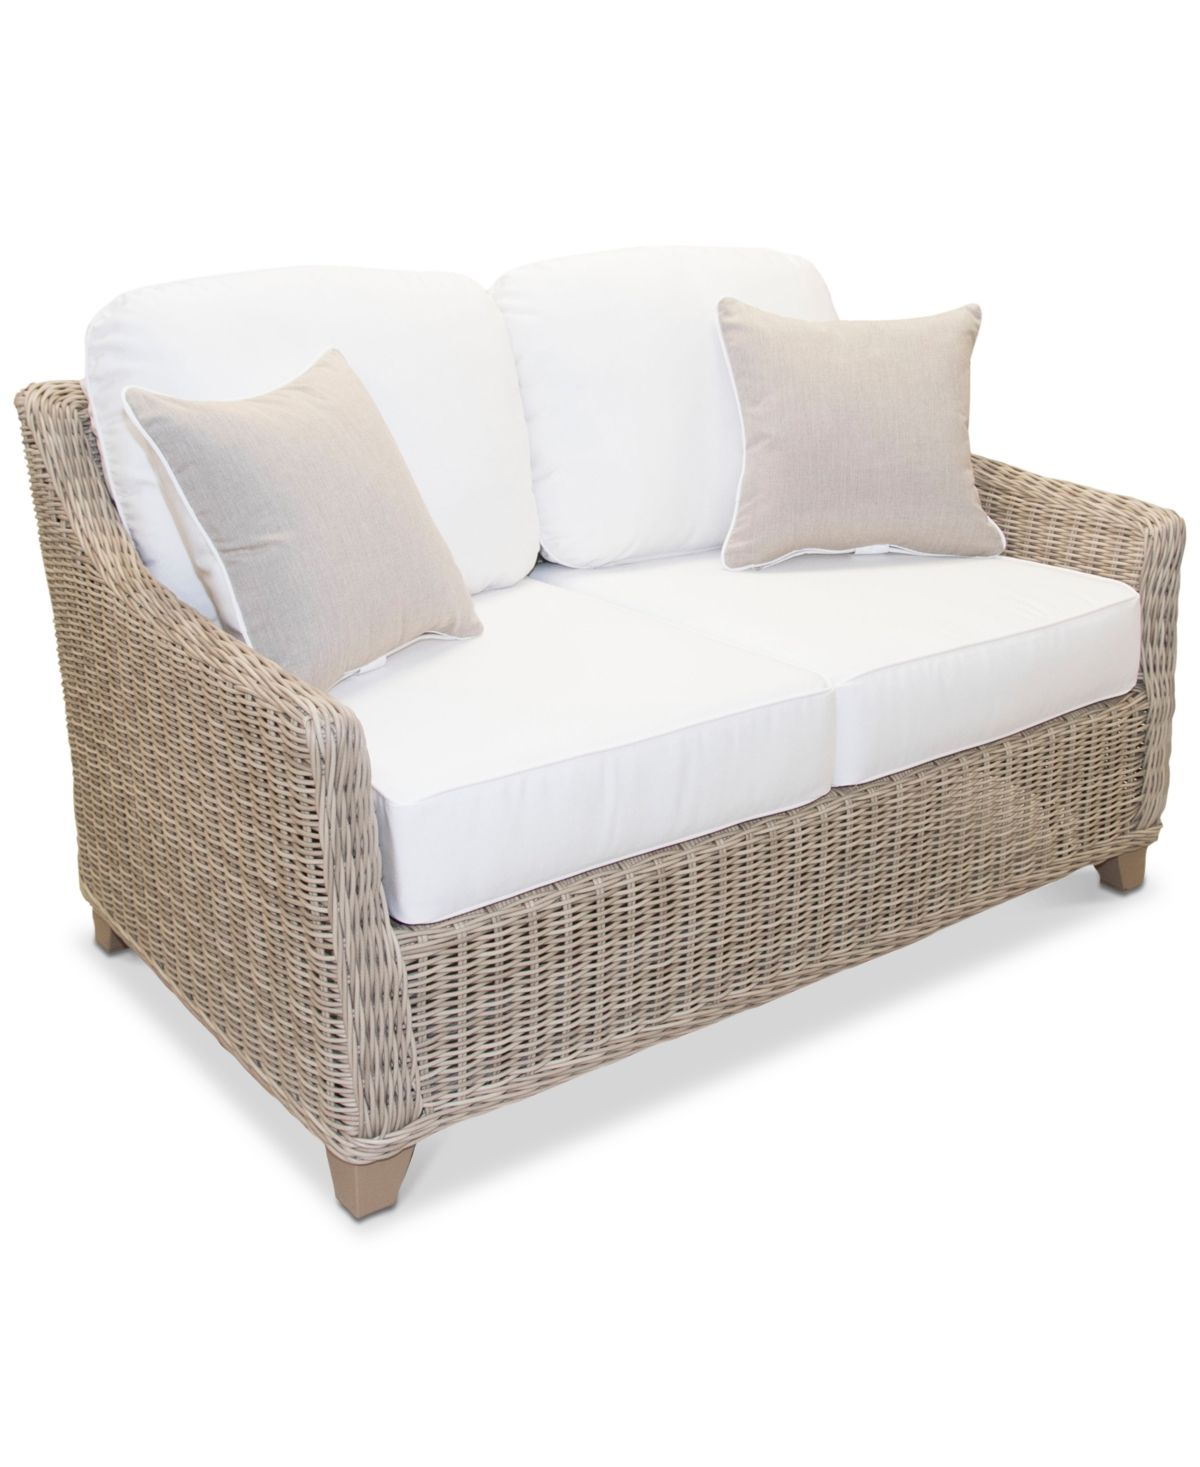 Furniture Willough Outdoor Loveseat With Sunbrella Cushions Created For Macy S Reviews Furniture Macy S In 2020 Outdoor Loveseat Love Seat Sunbrella Cushions